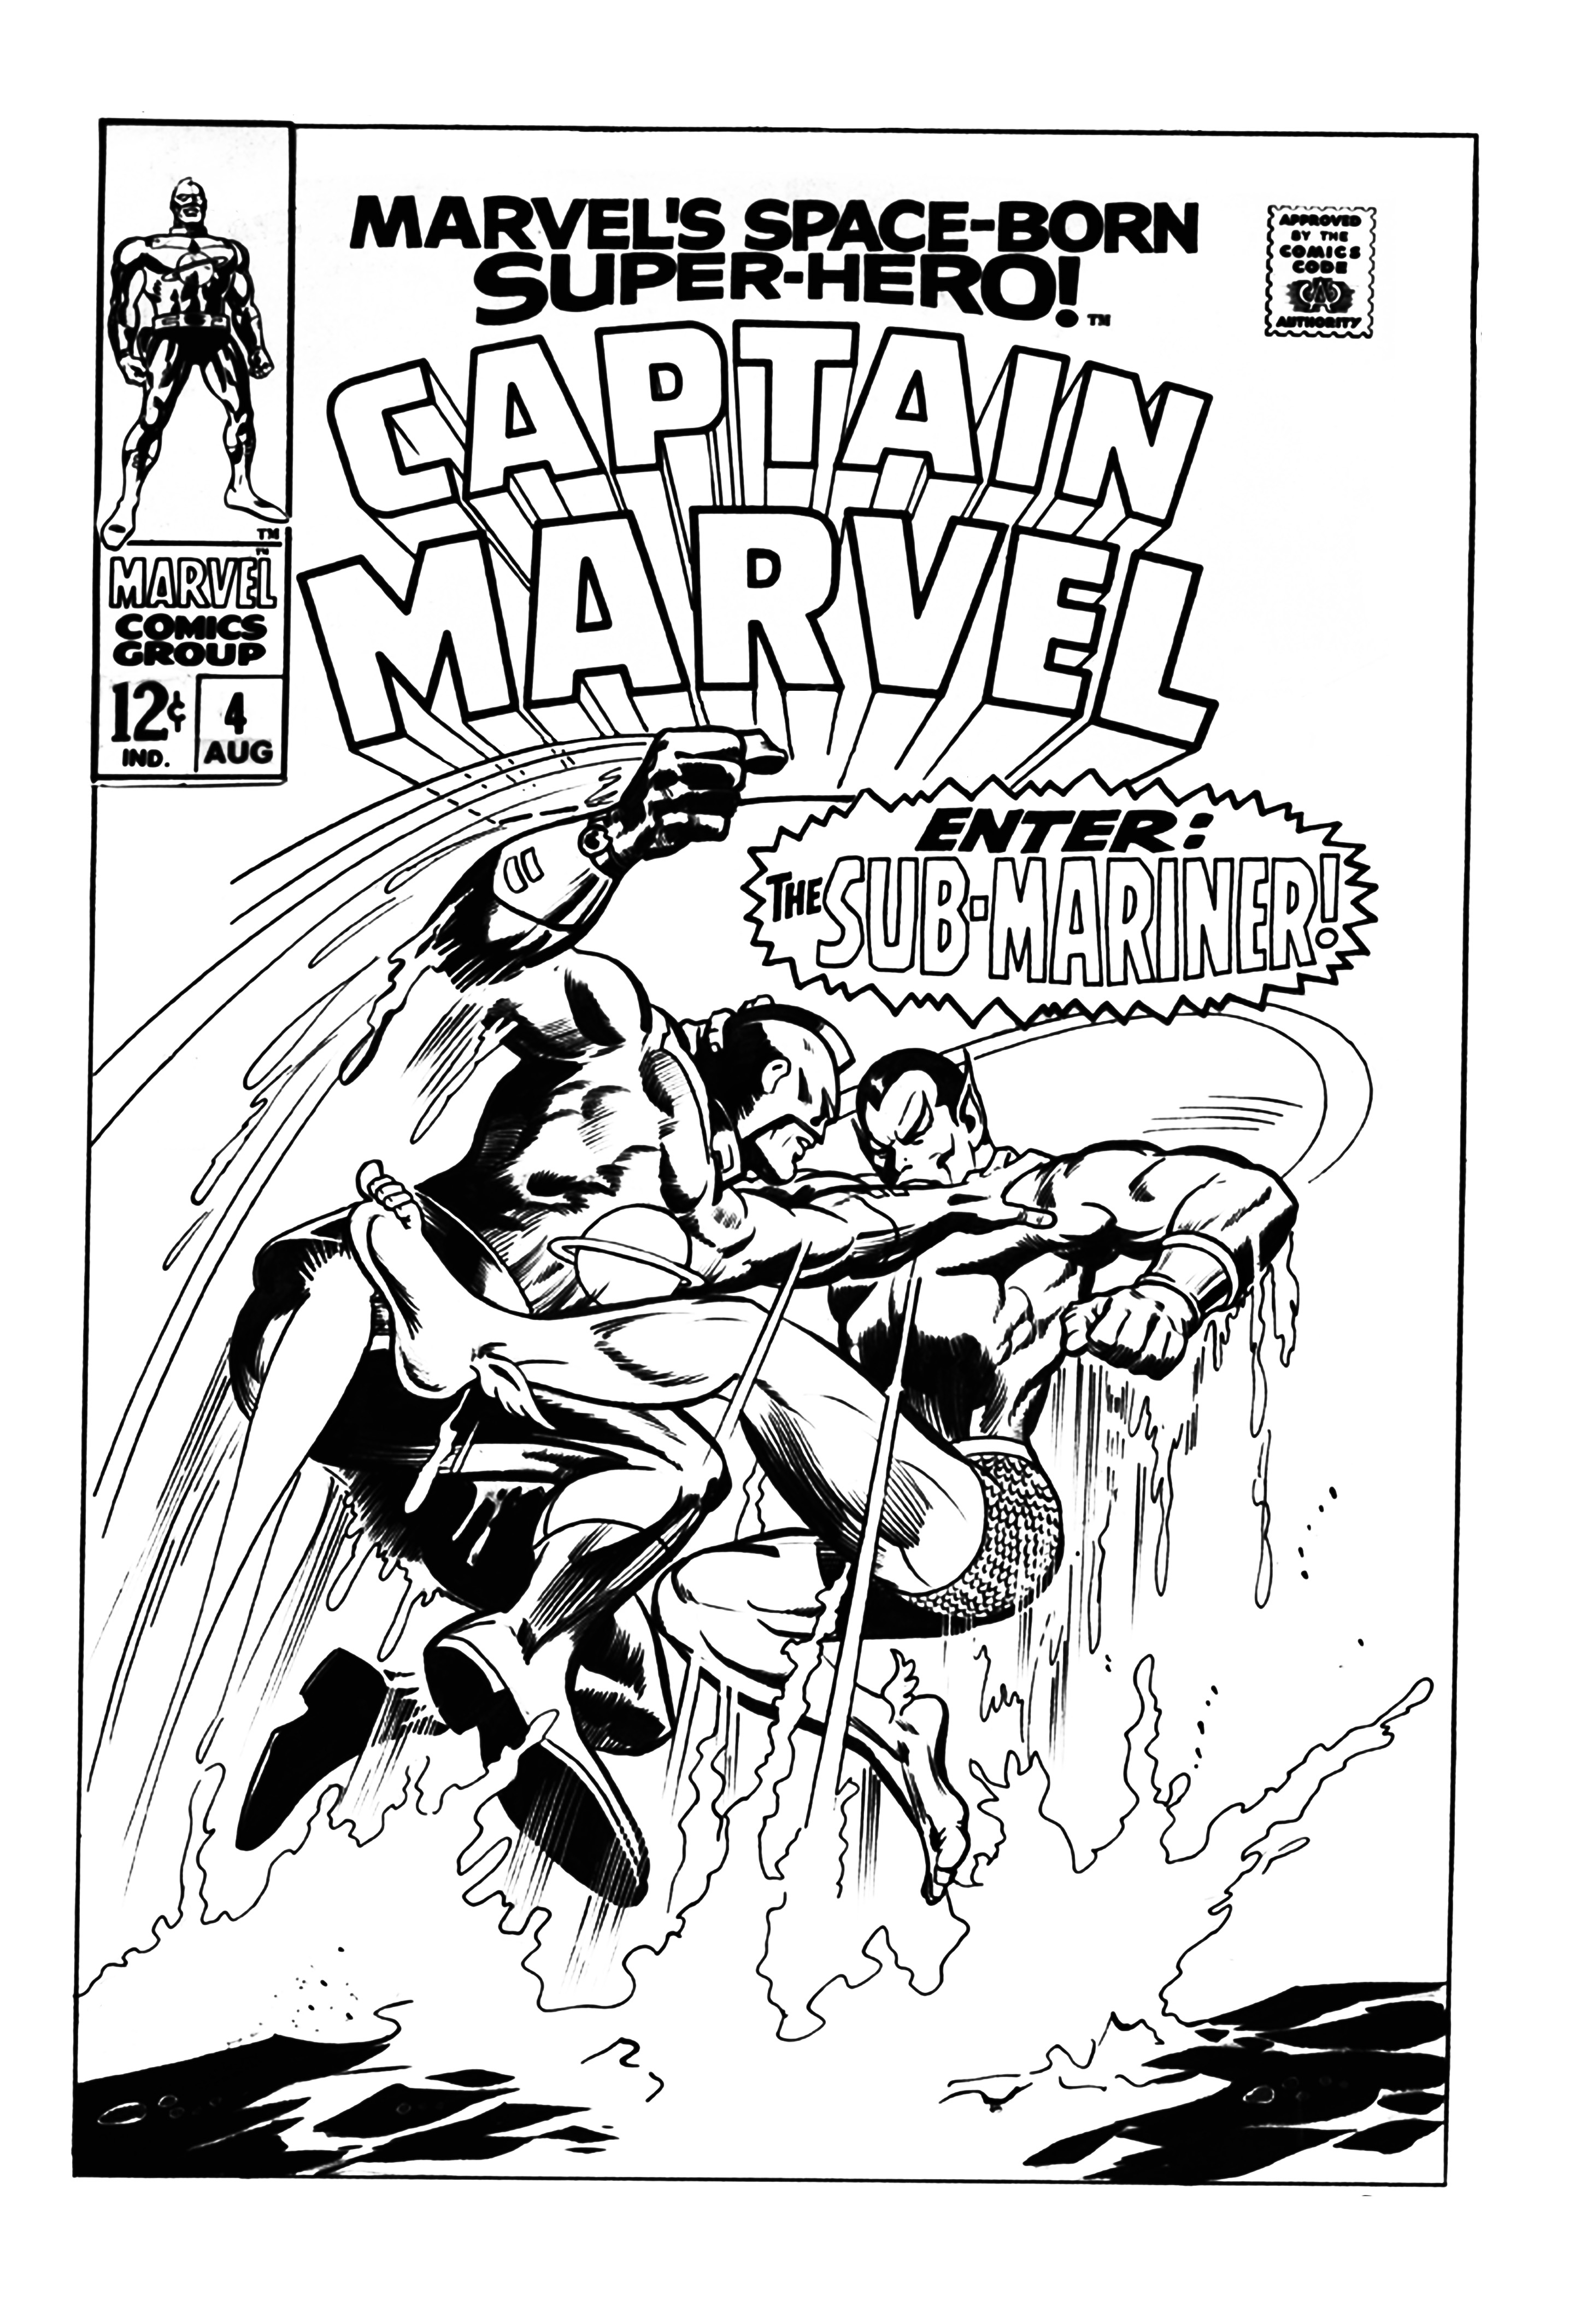 incredible hulk coloring pages - marvel lunivers des ics a colorier